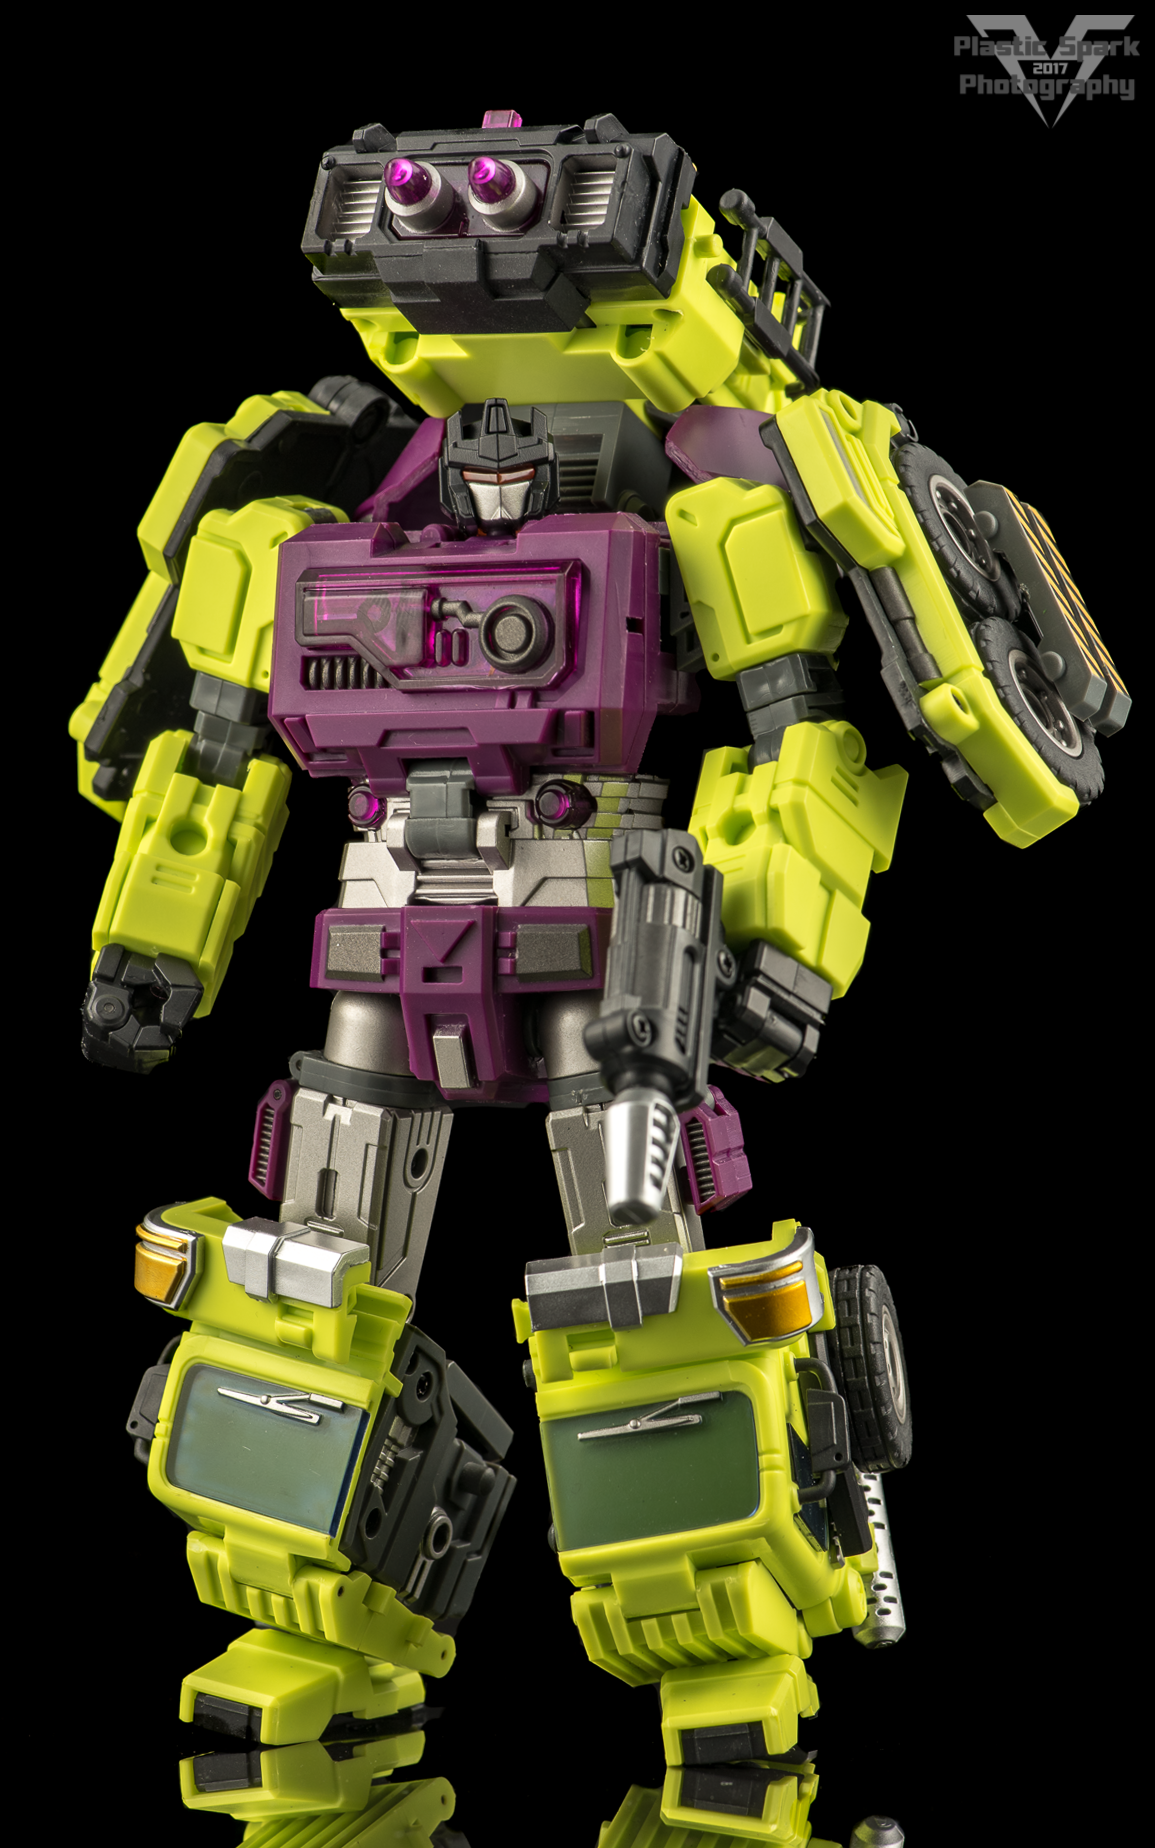 Generation-Toy-Gravity-Builder-(13-of-34).png